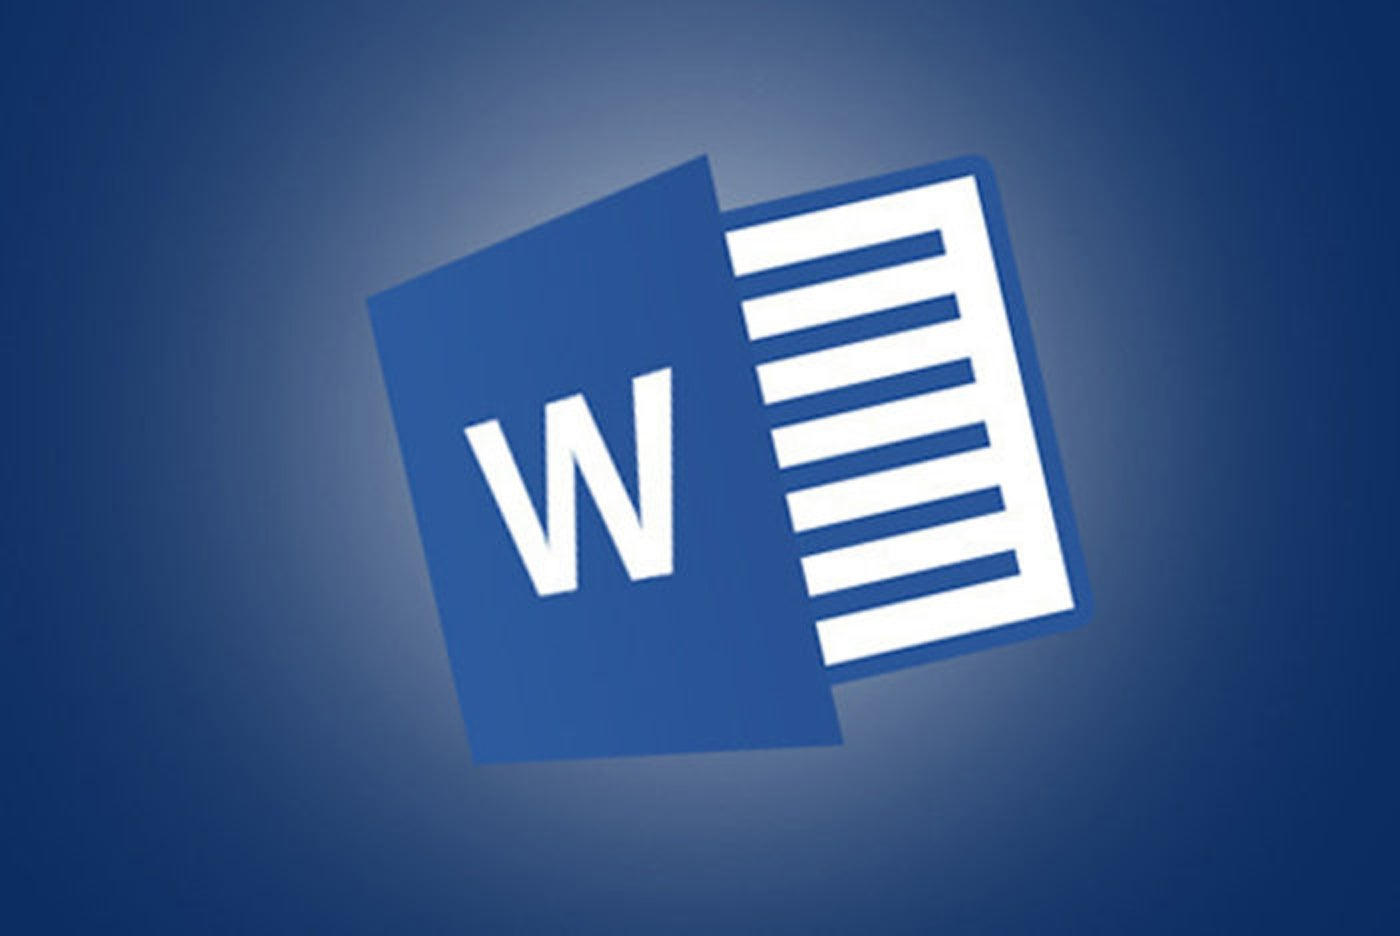 How To Use Modify And Create Templates In Word Pcworld